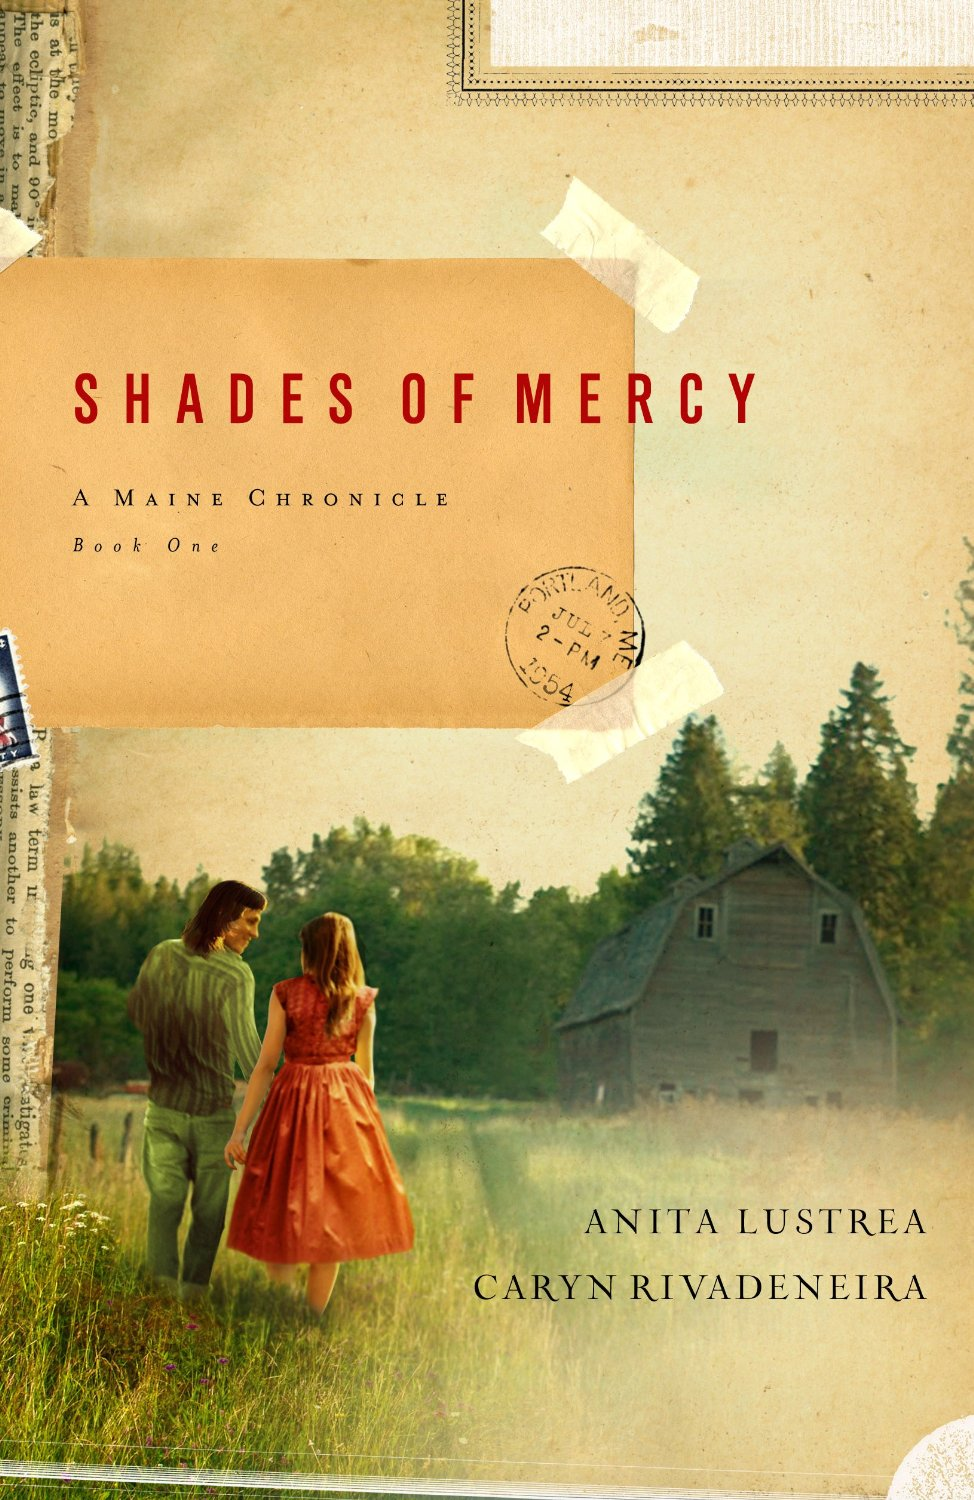 Shades of Mercy